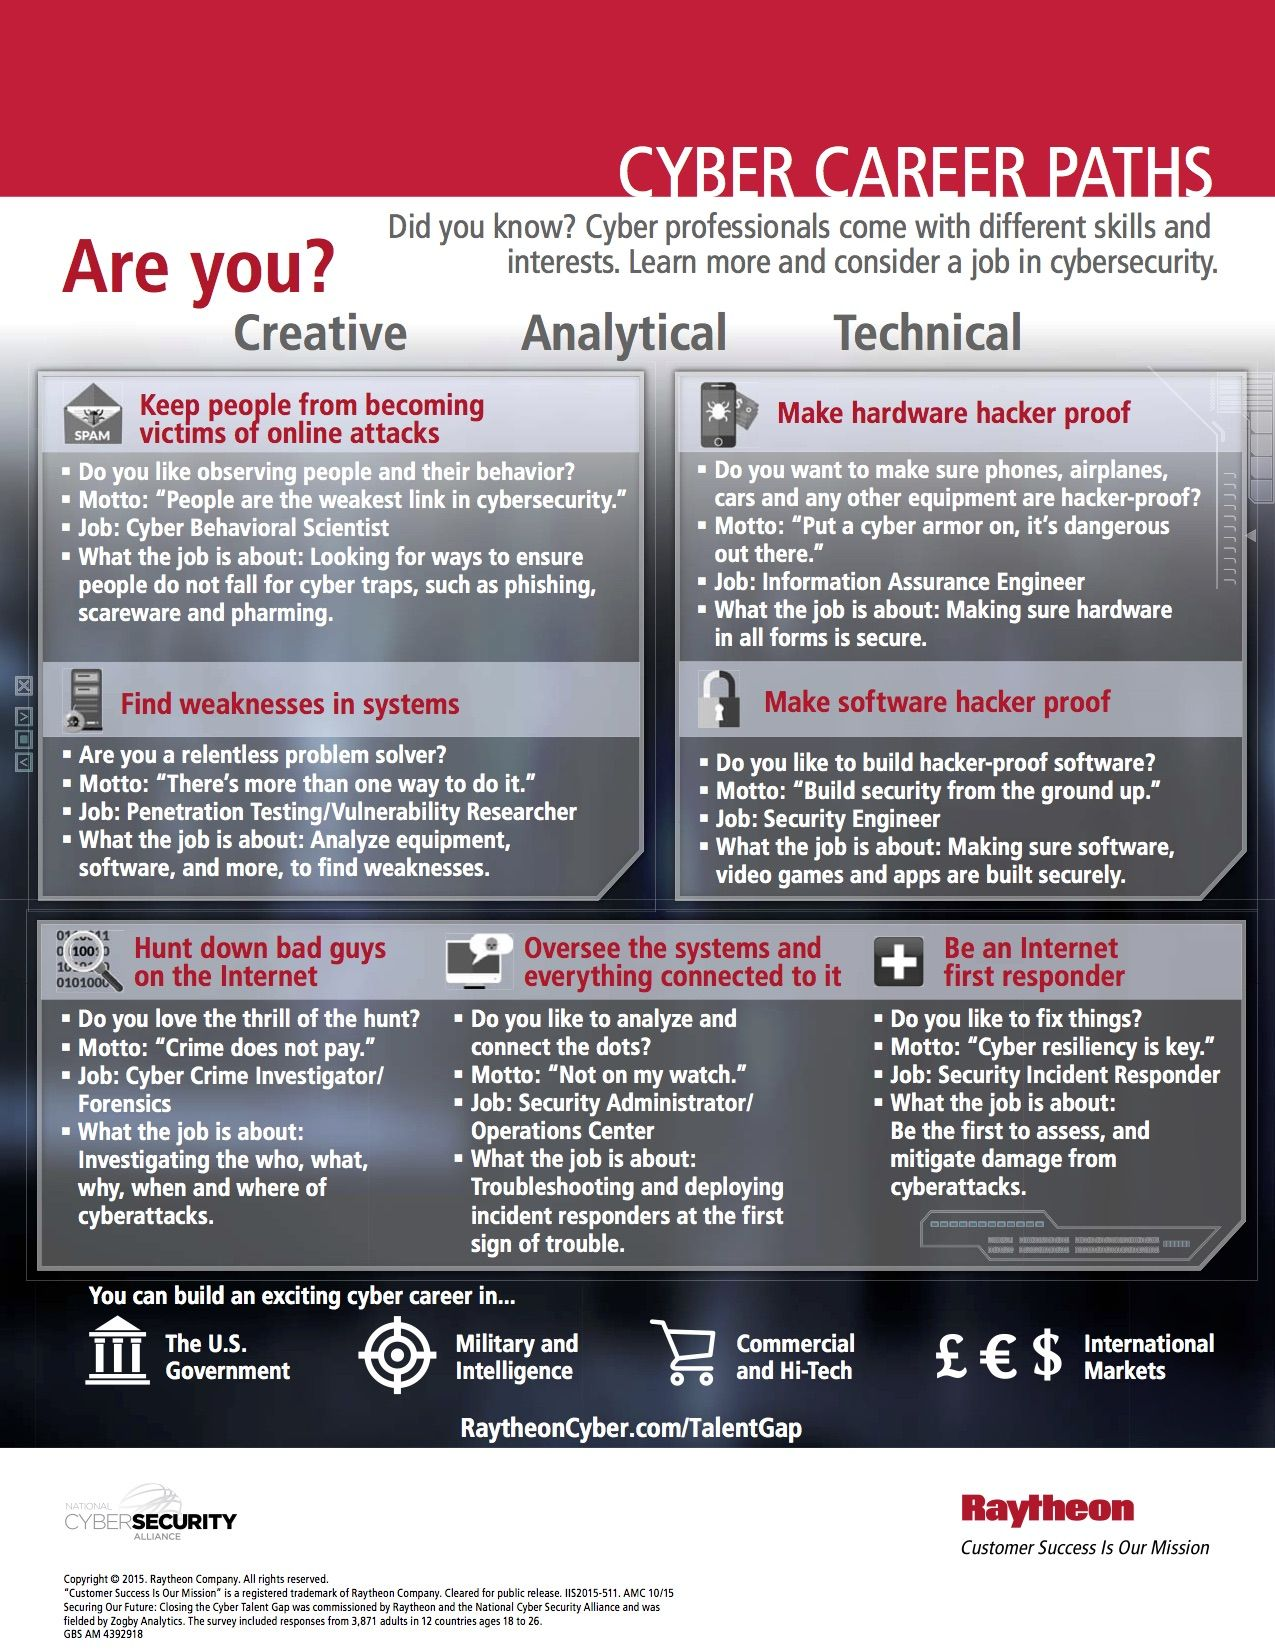 #cyber Career Paths Infographic #cyberaware Professional